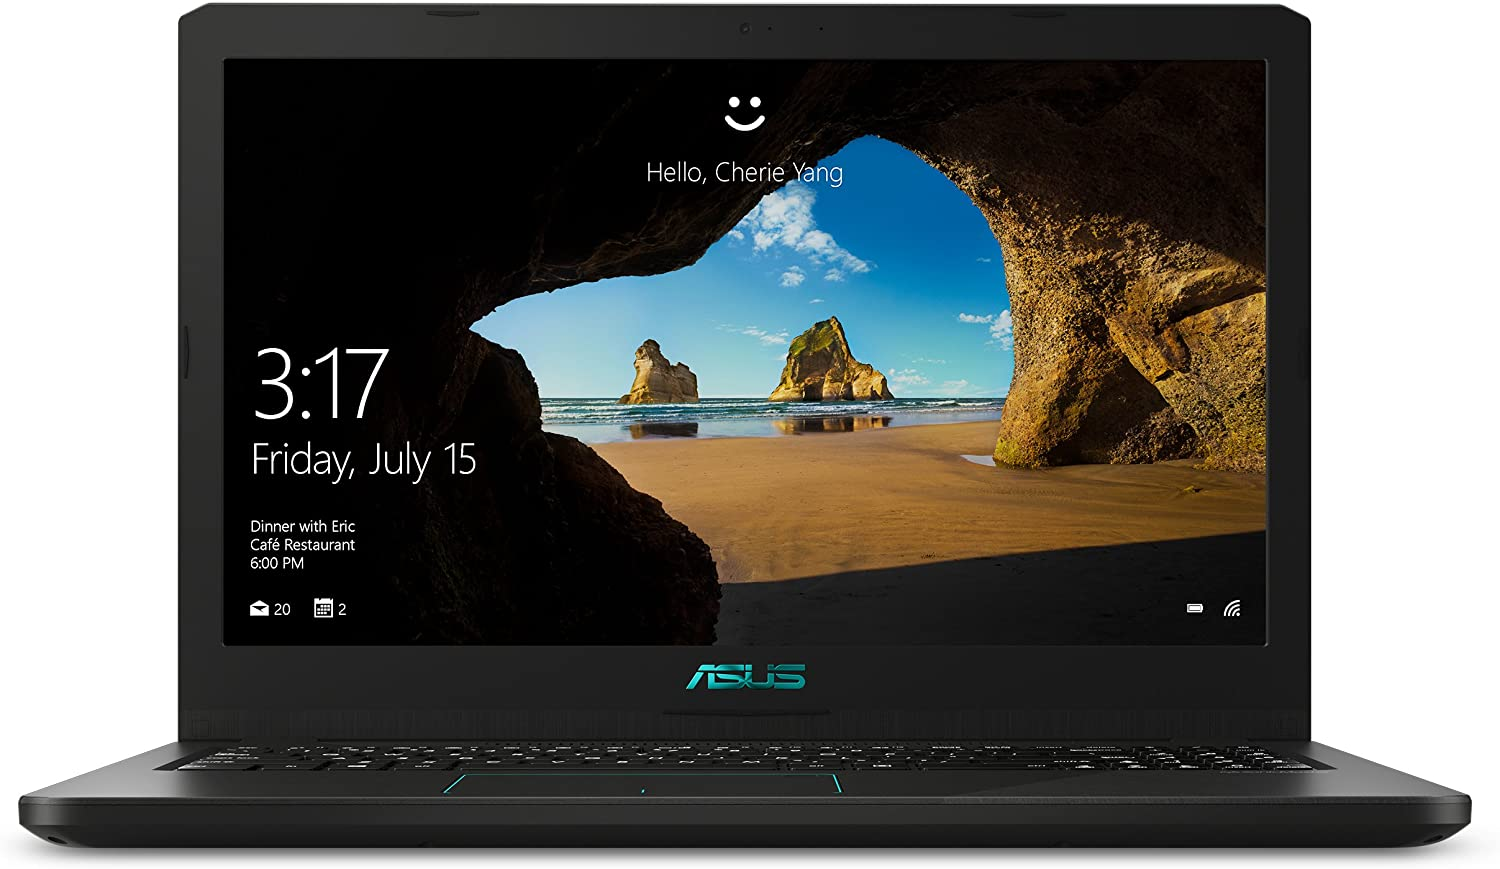 """ASUS K570UD-DS74 VivoBook Laptop, i7-8550U, GTX 1050 2GB, 8GB DDR4, 15.6"""" FHD Wide View, 256GB SSD + 1TB HDD, 802.11ac, Casual Gaming Laptop"""